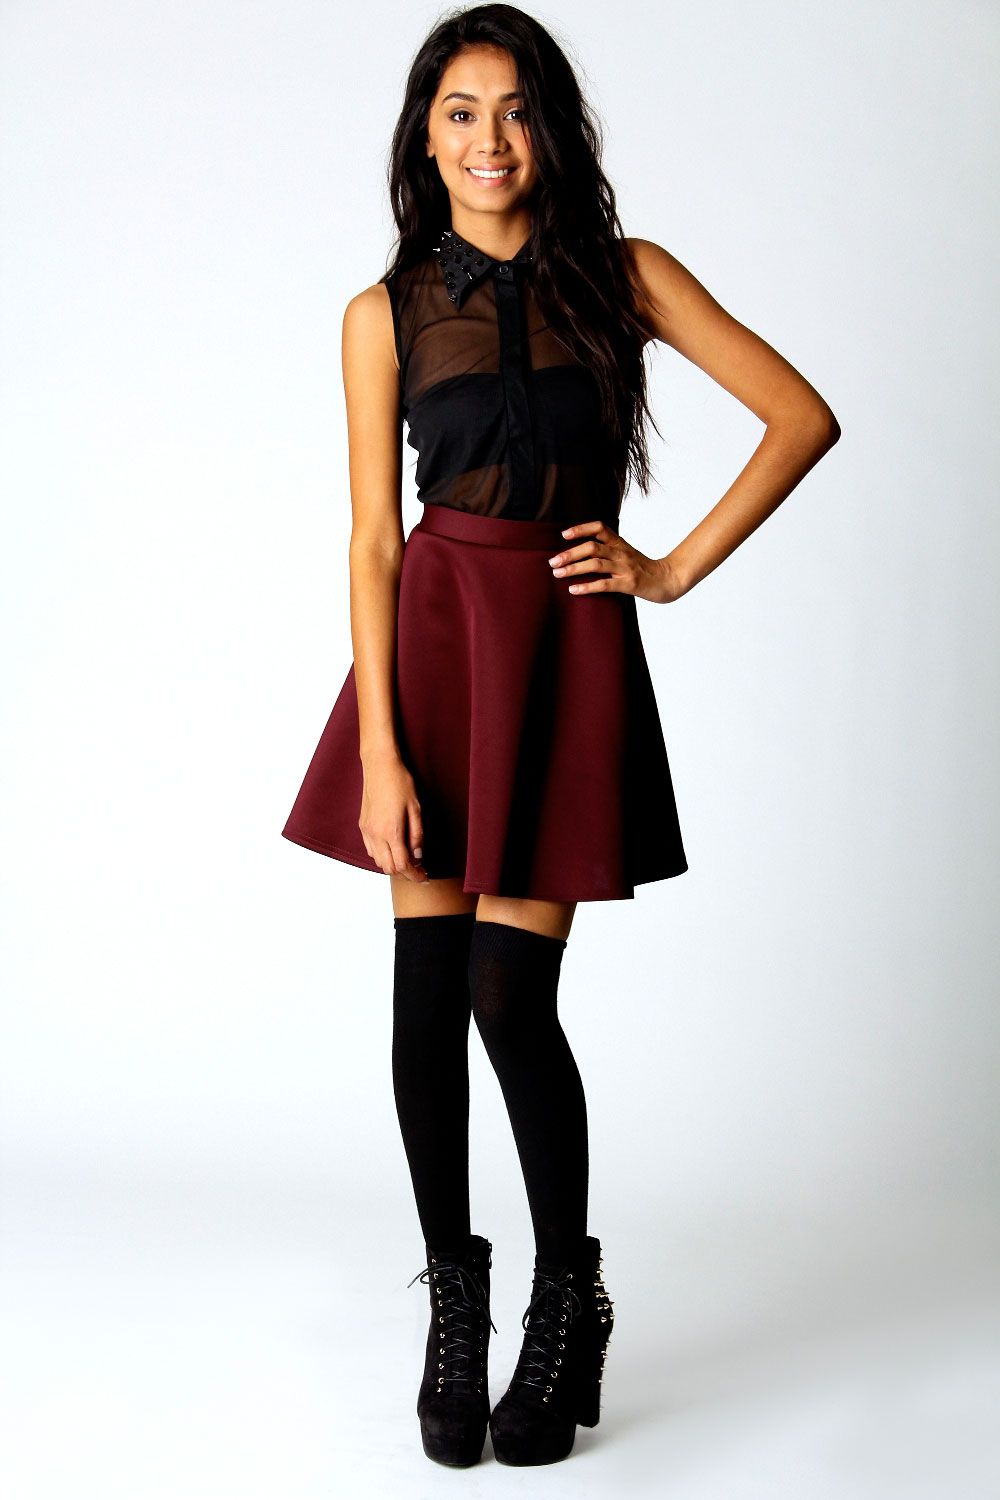 e140111e0 that indie rock kid: Winter Fashion Trend 2012 - Skater Skirts